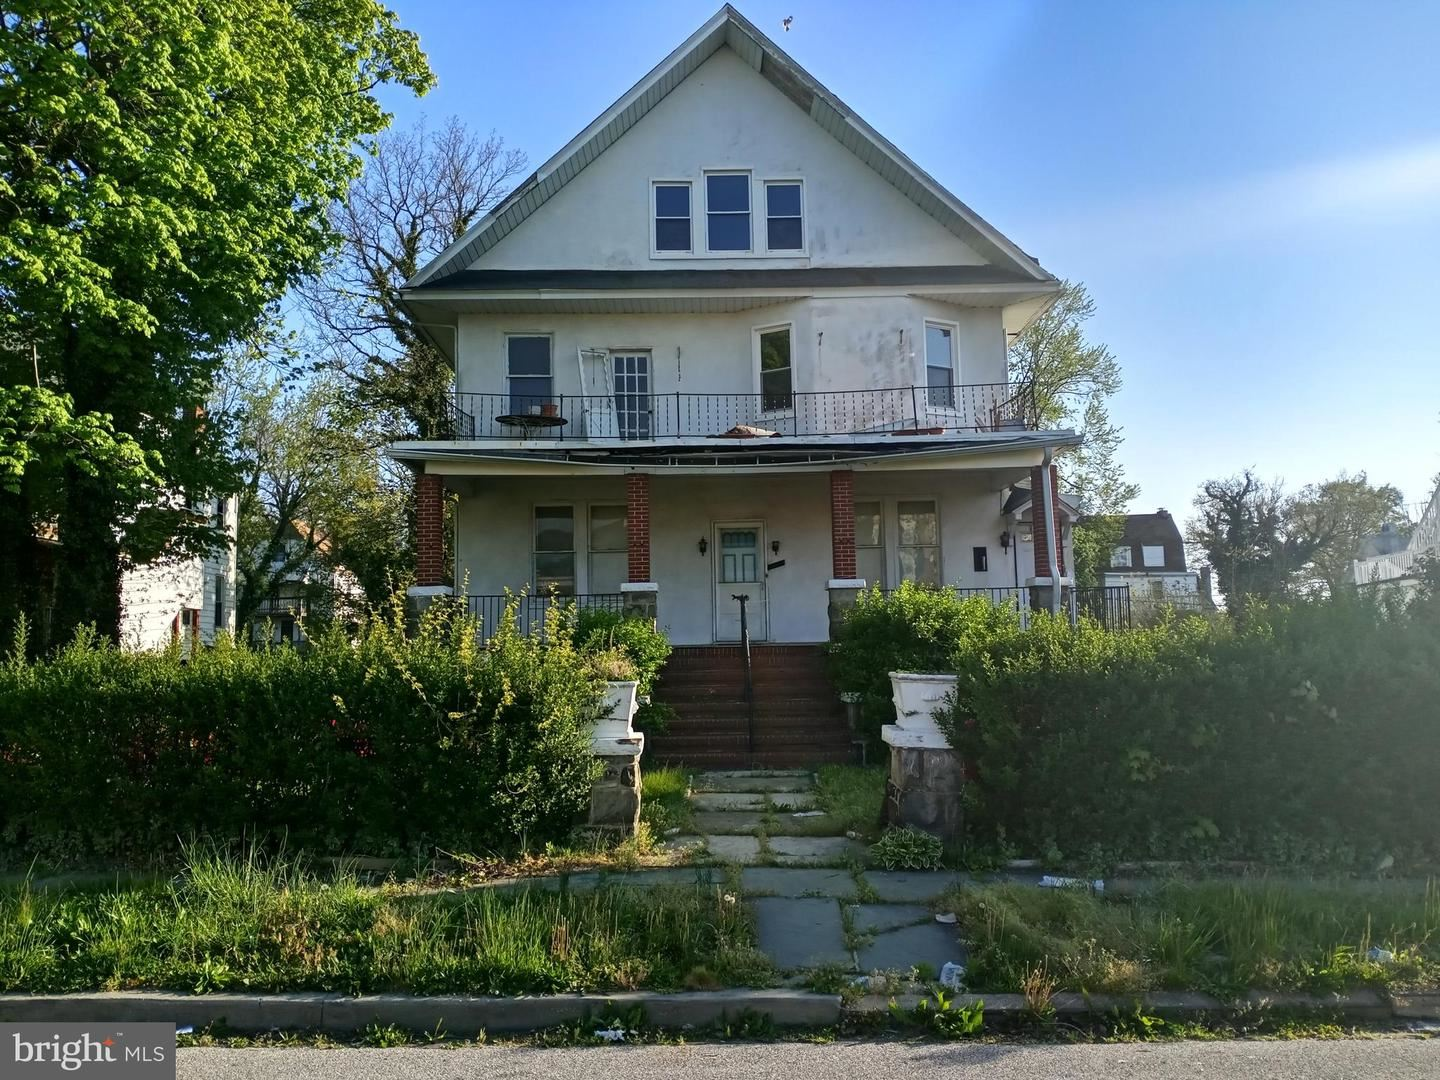 3706 FAIRVIEW AVE, Baltimore, MD 21216 - MLS#: MDBA548808